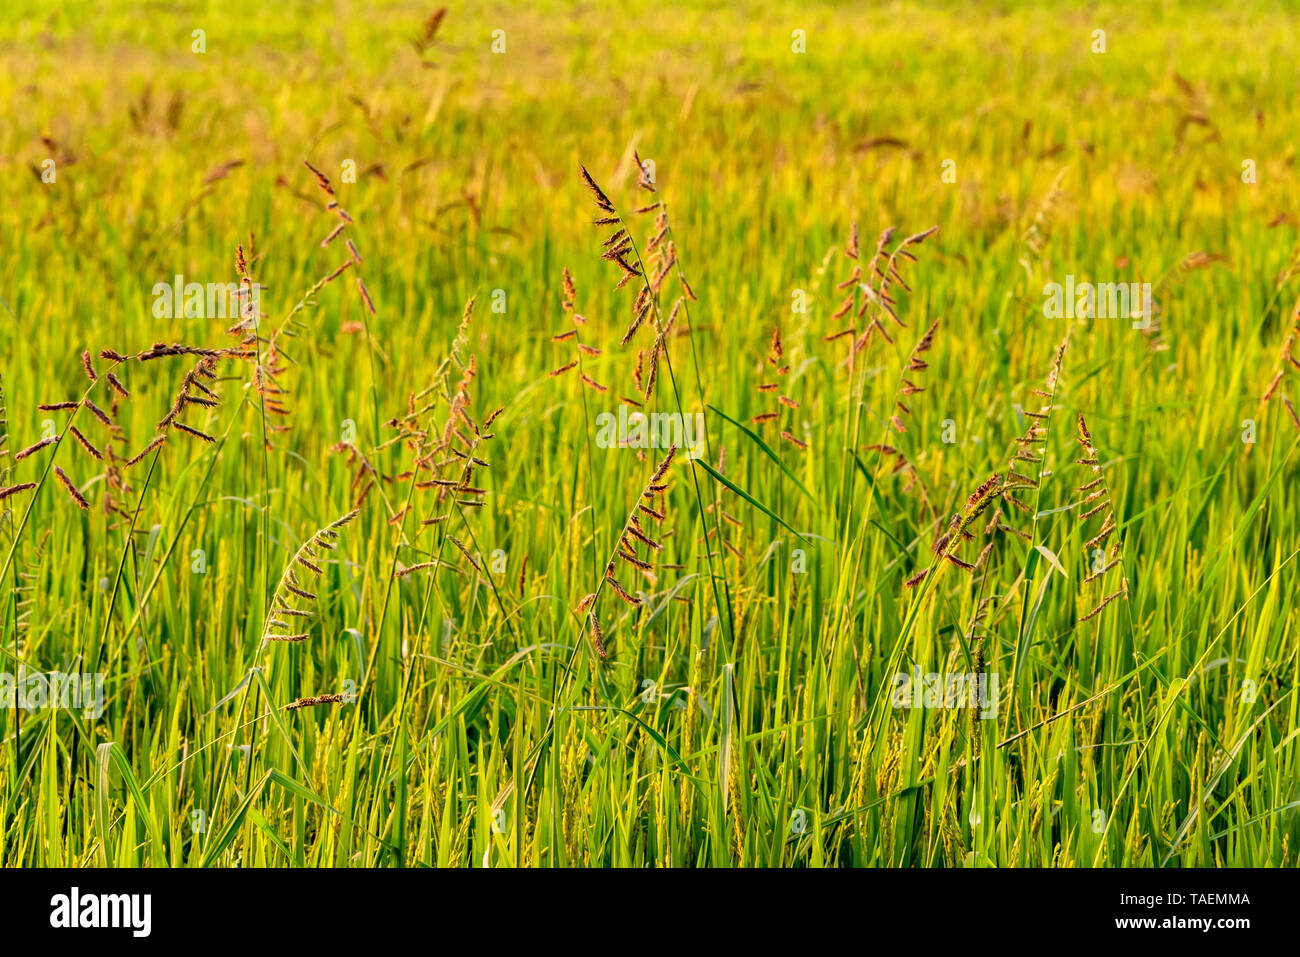 Horizontal view of rice growing in a paddy field in India. - Stock Image